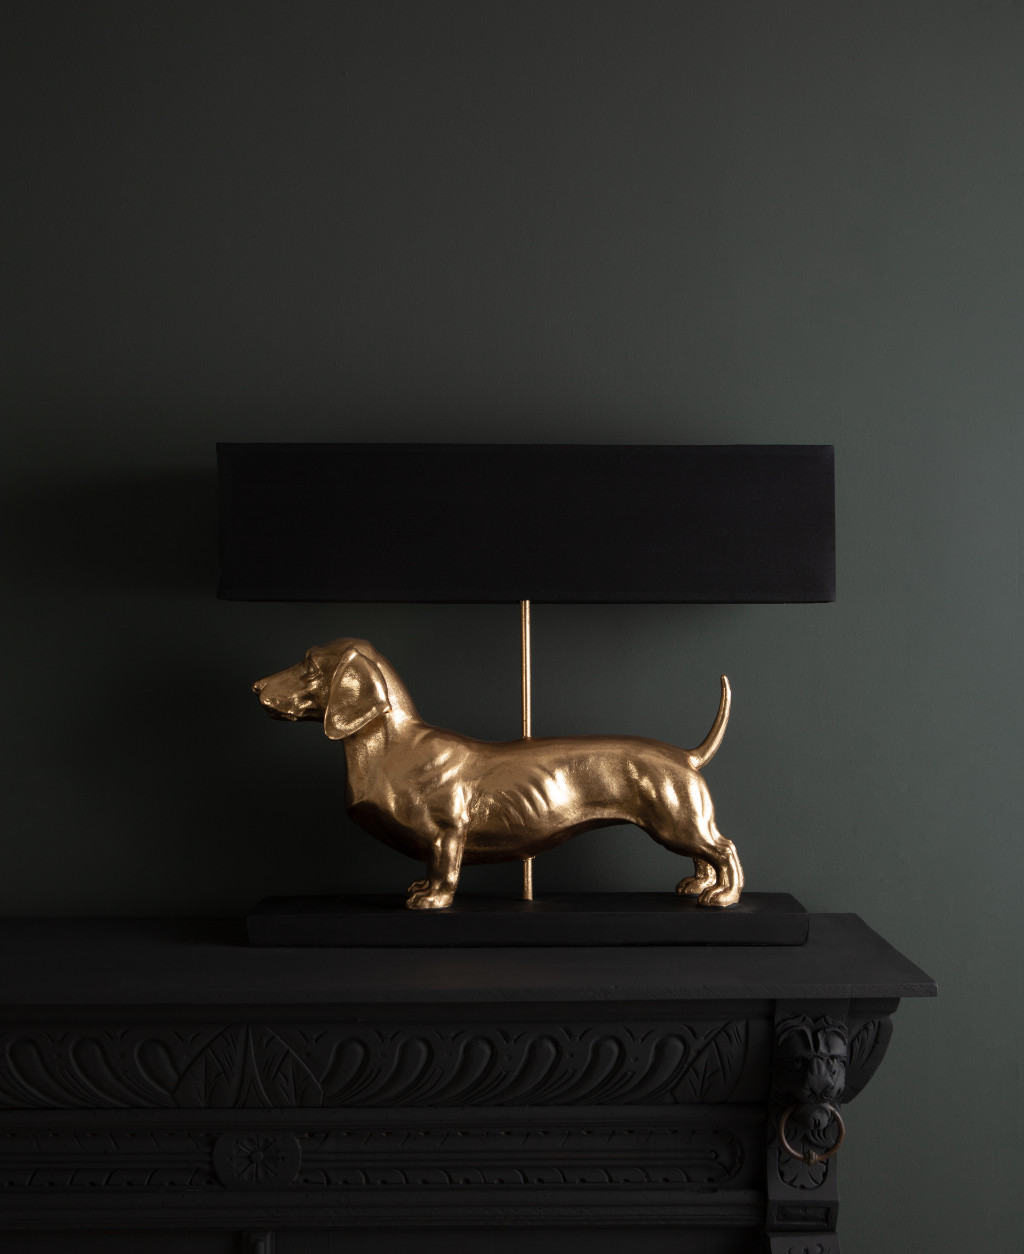 Fred dachshund gold dog table lamp with black shade on dark background switched off